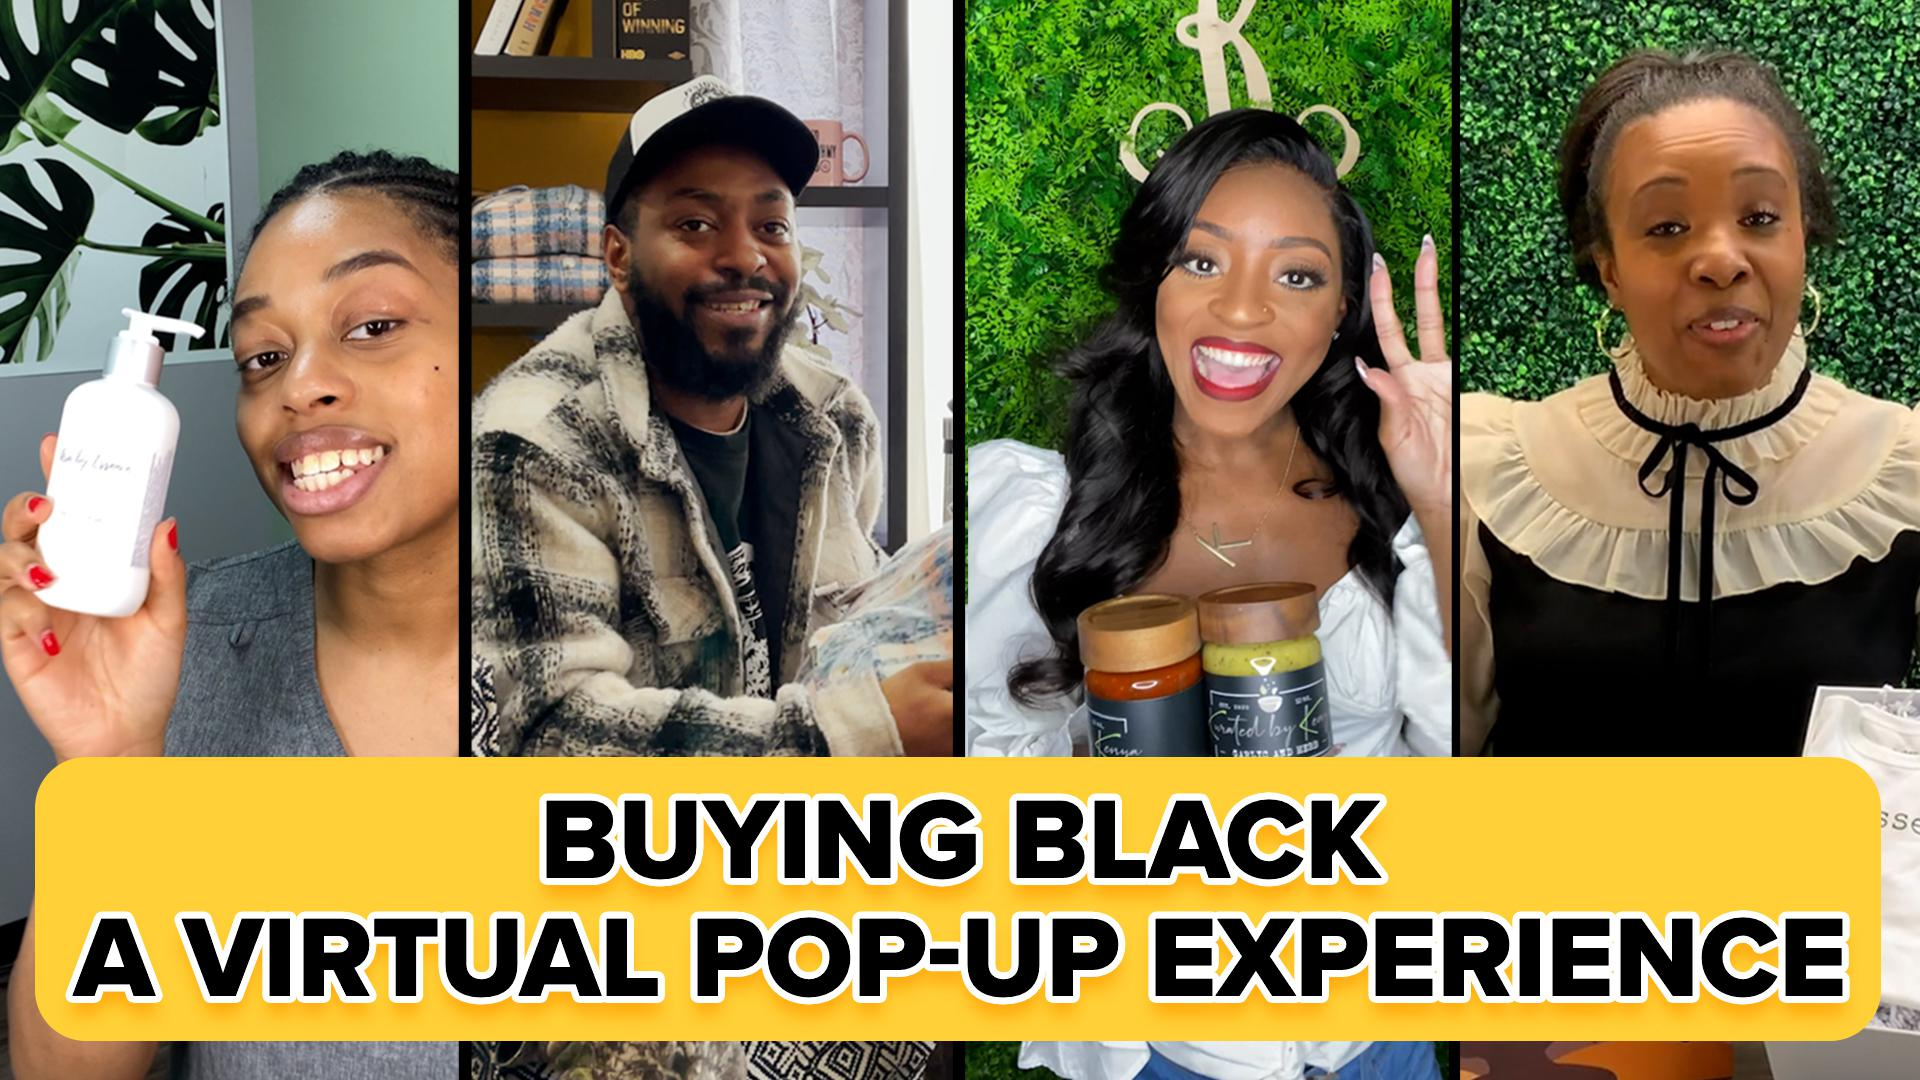 www.buzzfeed.com: Buy Black With BIO Virtual Experience presented by BIO and Cocoa Butter